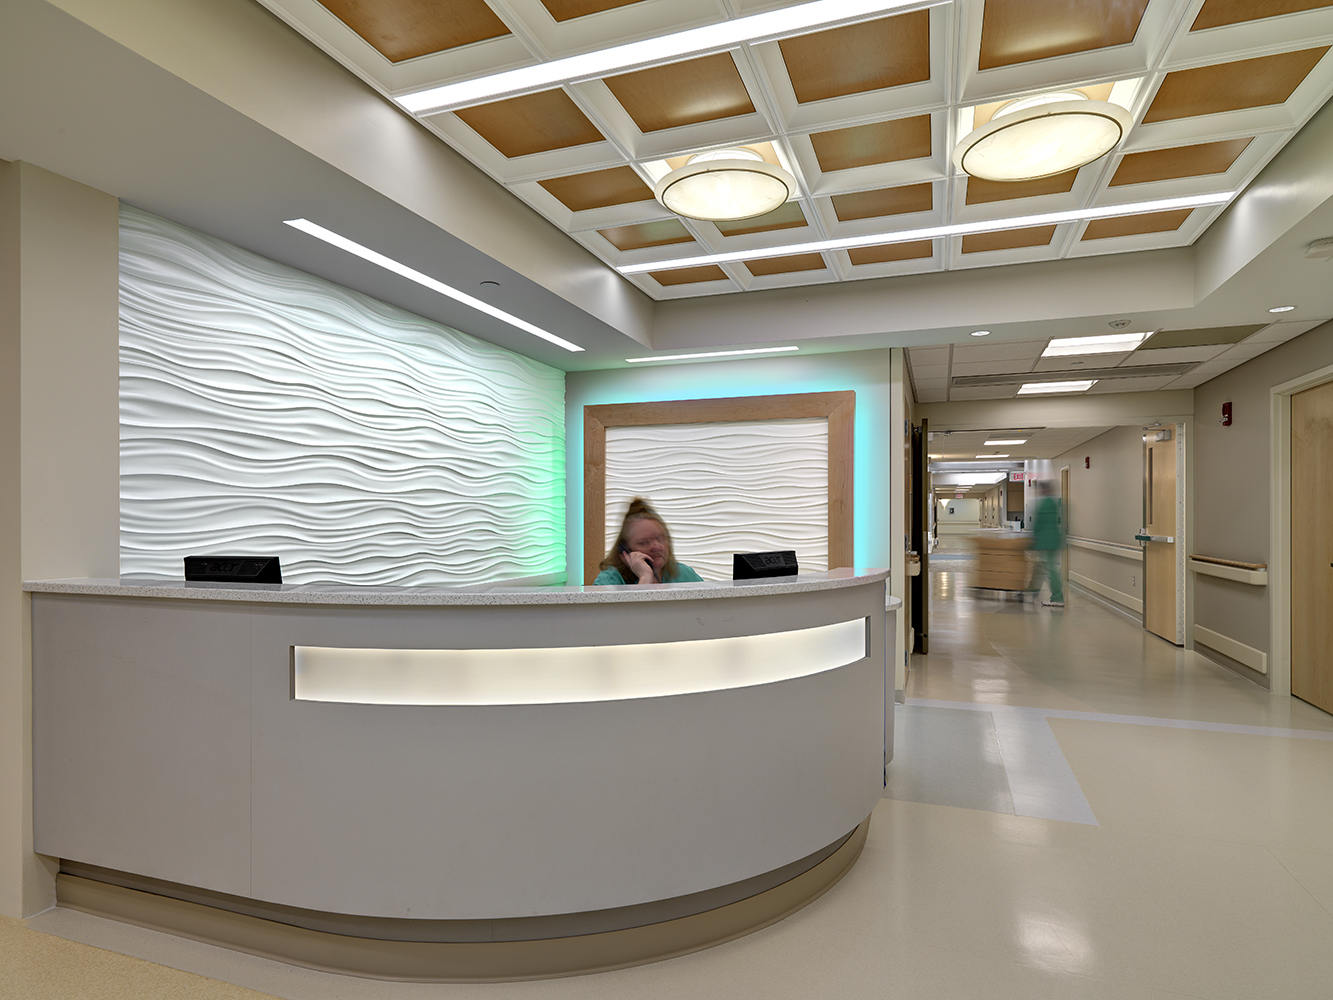 Ovation in a sleek, modern healthcare design application, mounted above a nurse's station.